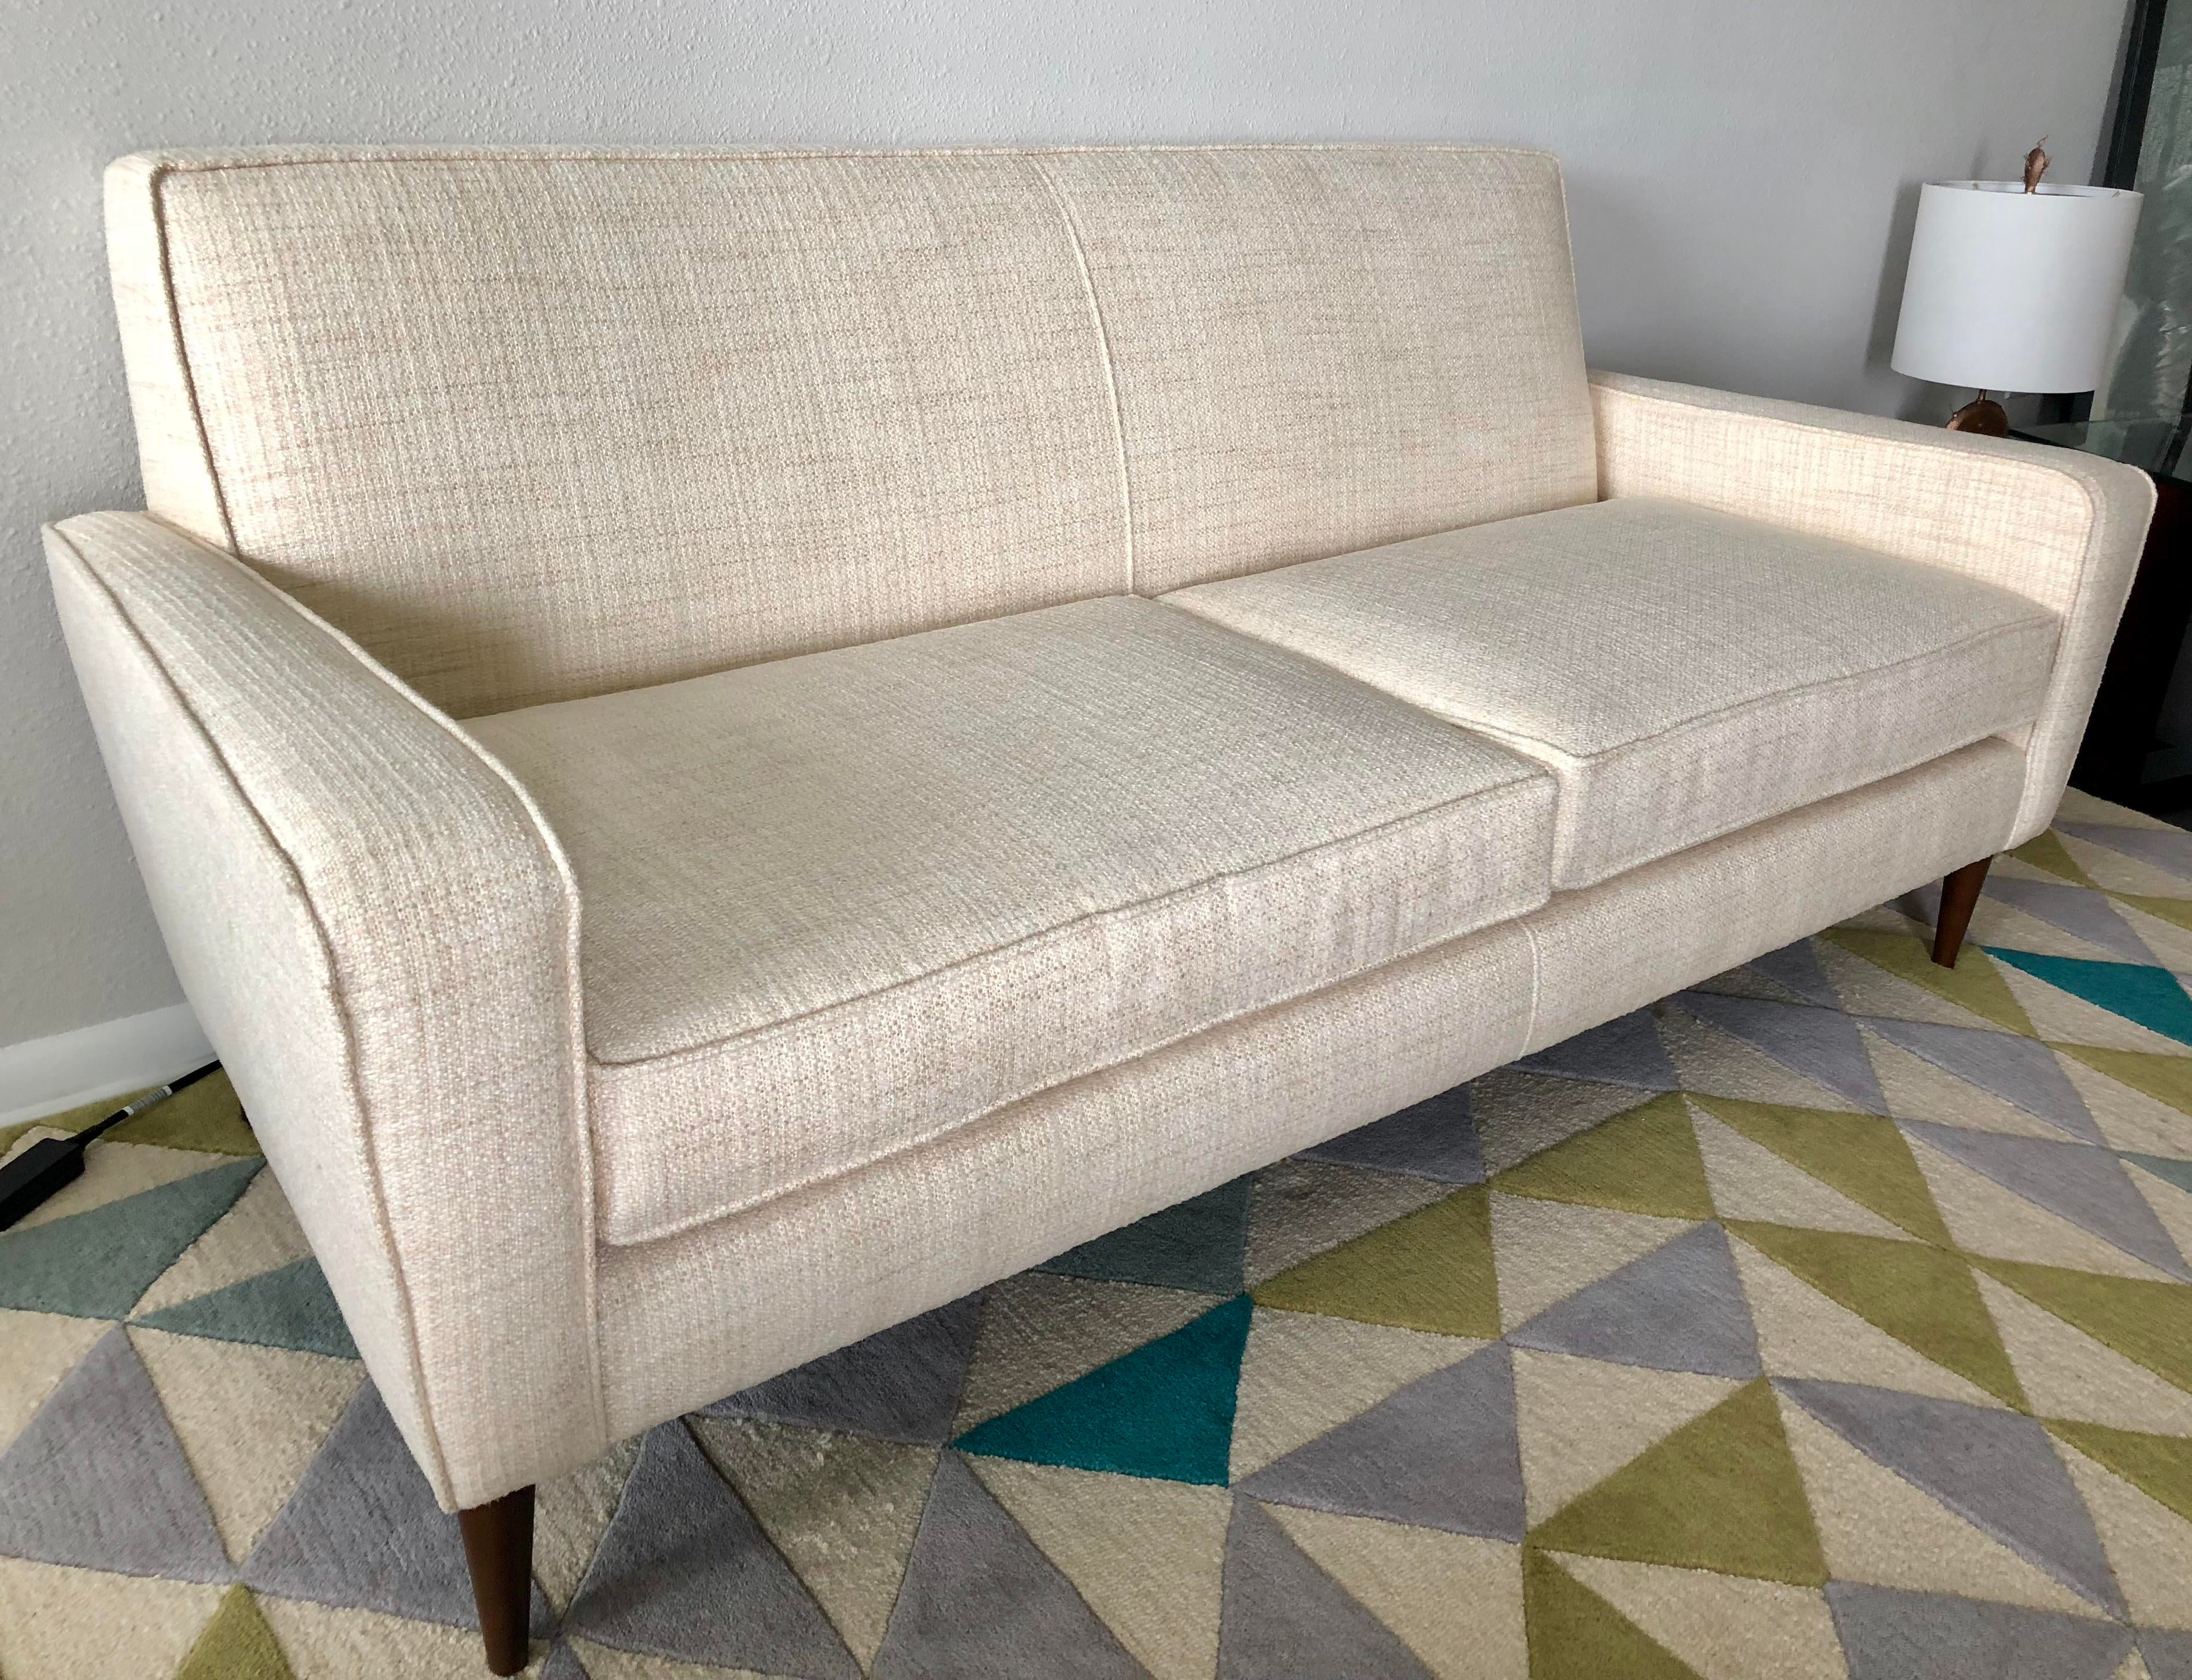 Crate U0026 Barrel Torino 2 Seat Apartment Sofa   Image 2 ...